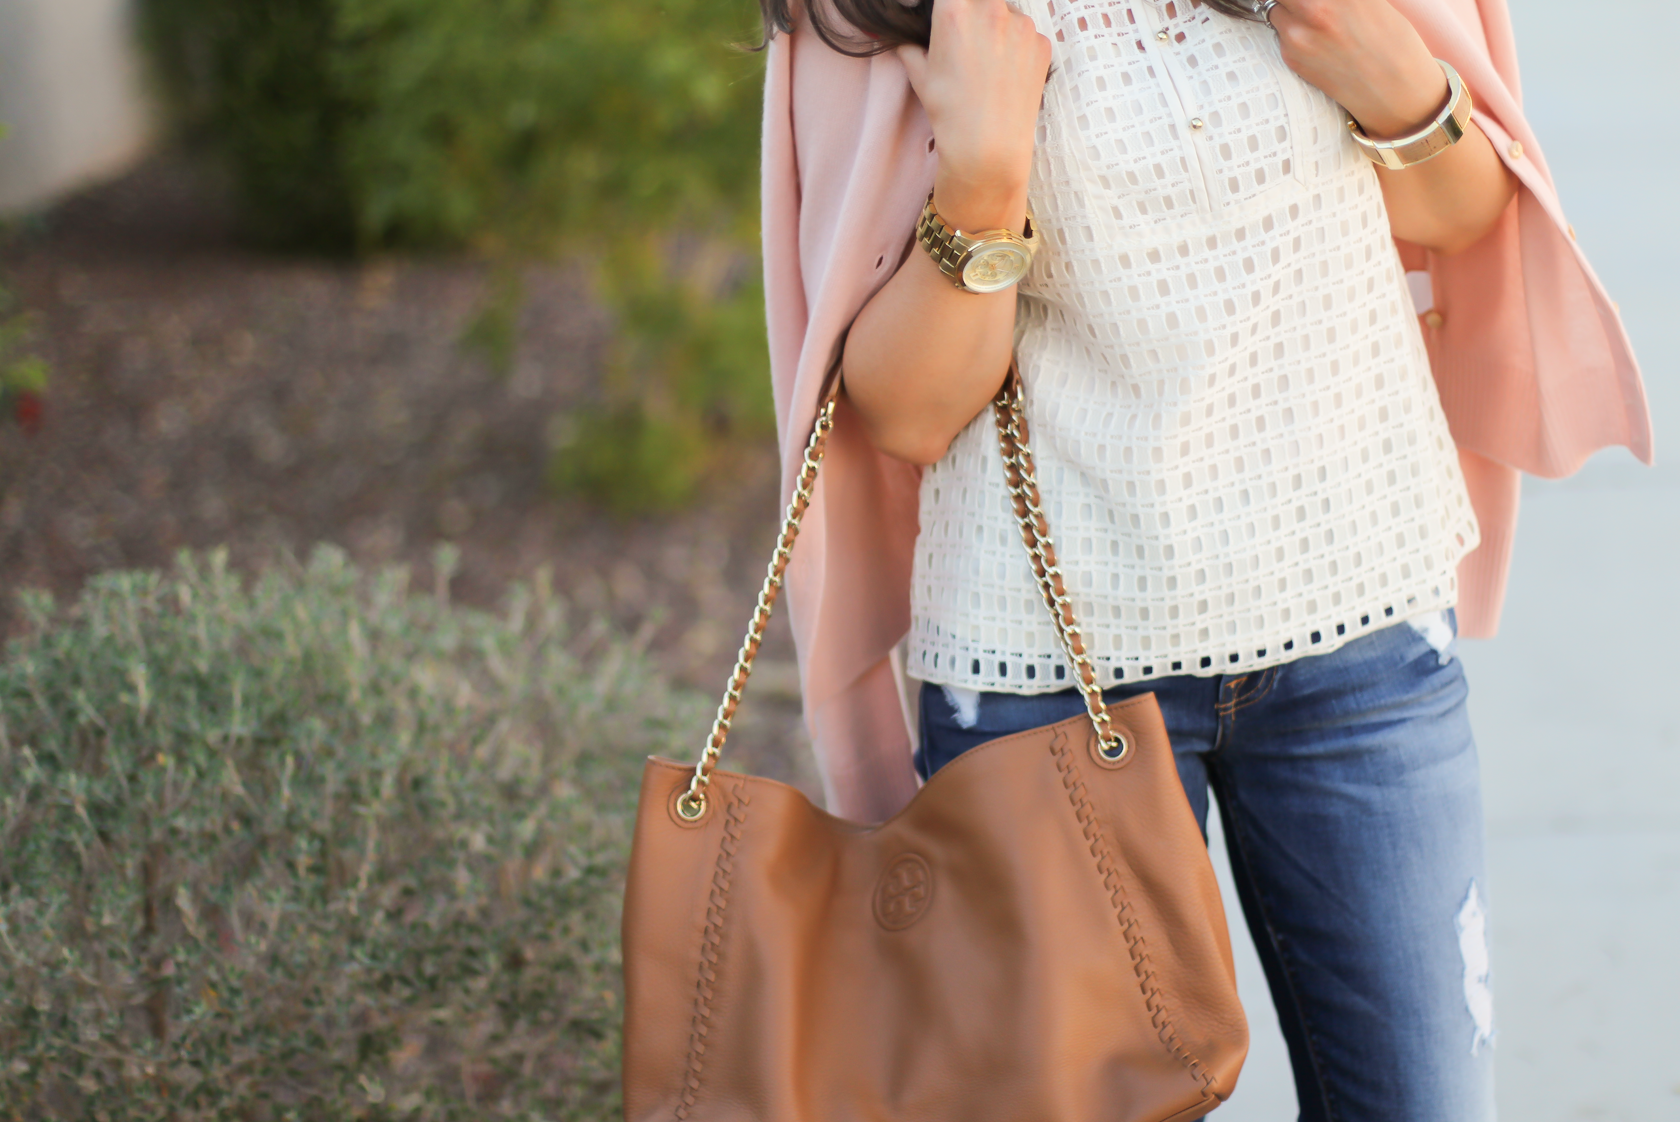 Eyelet Ruffle Sleeve Blouse, Distressed Skinny Jeans, Blush Cashmere Cardigan, Tan Leather Flats, Tan Leather Chain Strap Tote, Banana Republic, 7 for All Mankind, Tory Burch 10